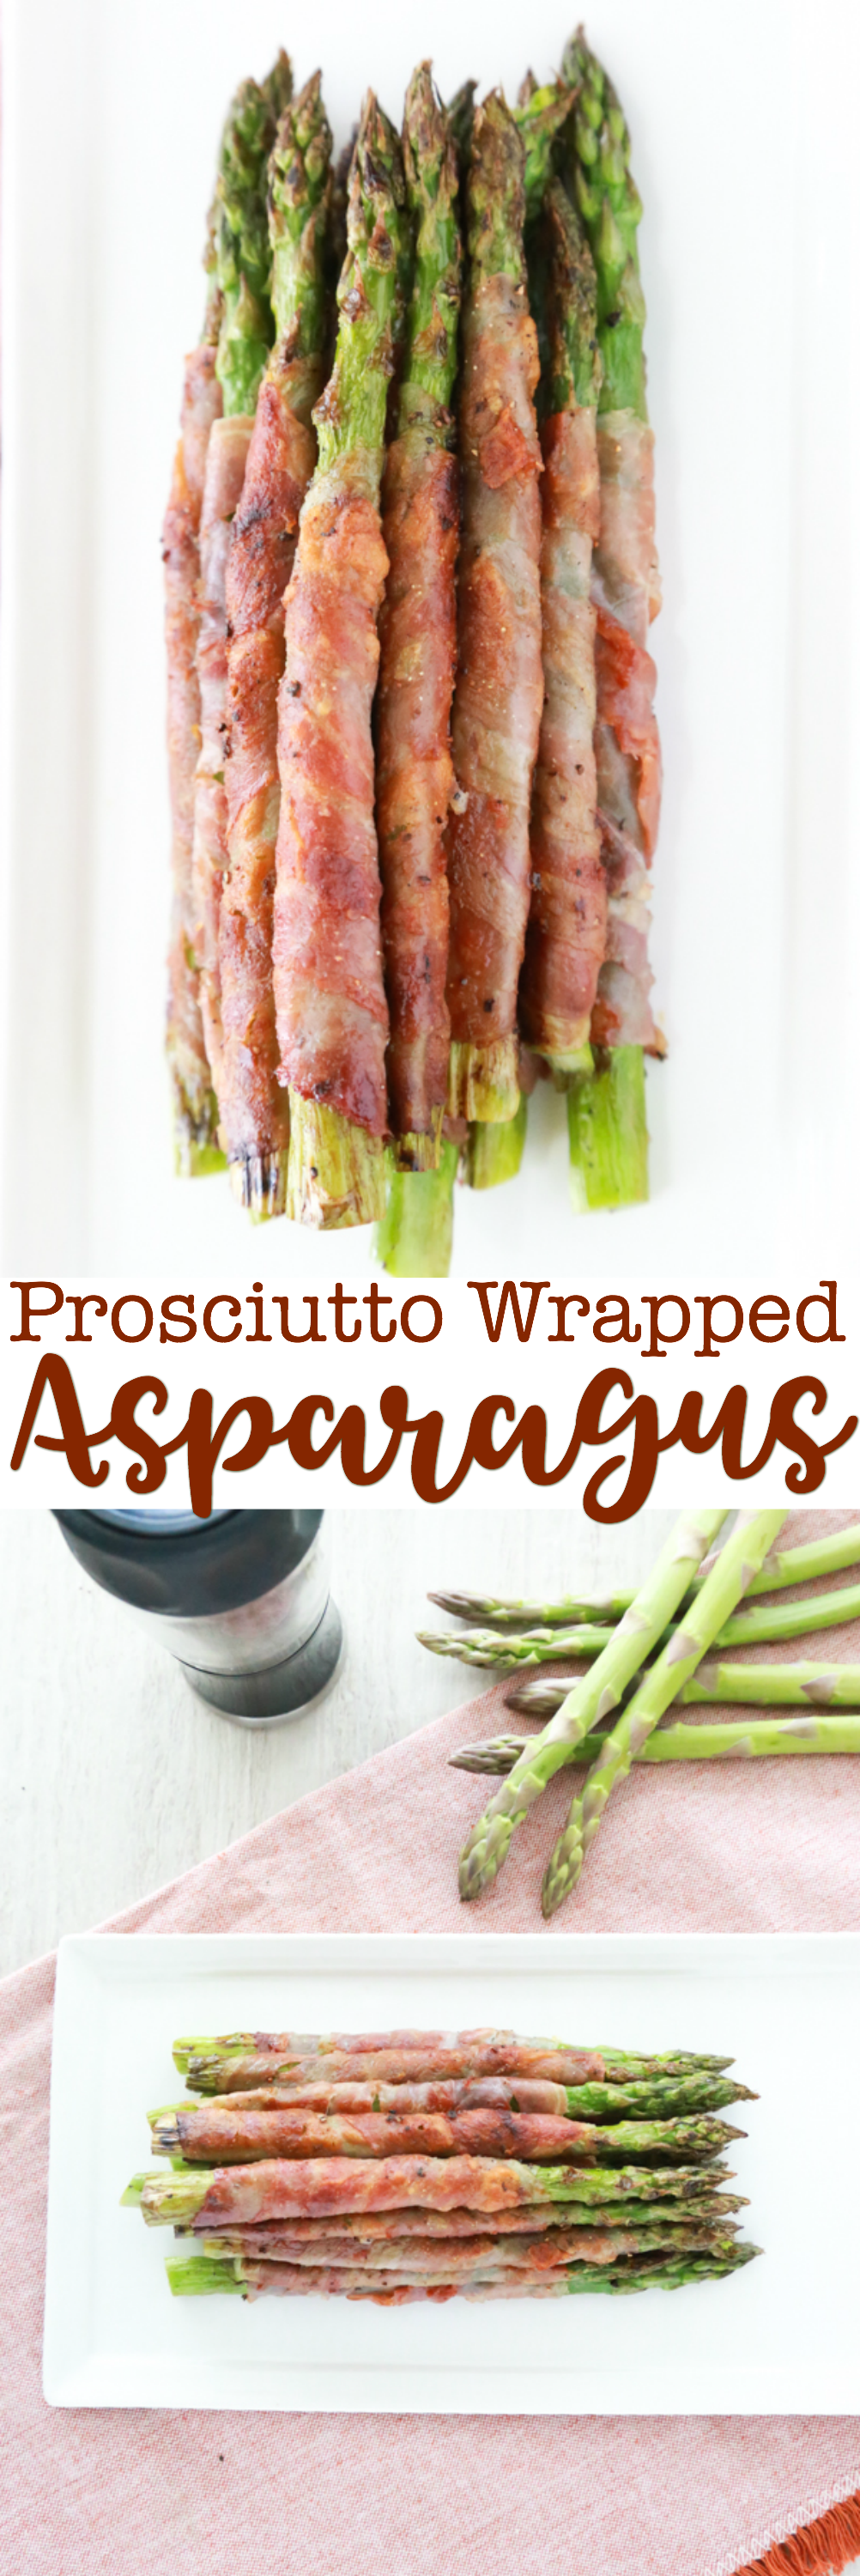 Even if you think you don't like asparagus, this Easy Prosciutto Wrapped Asparagus recipe will absolutely change your mind. The best asparagus recipe EVER!